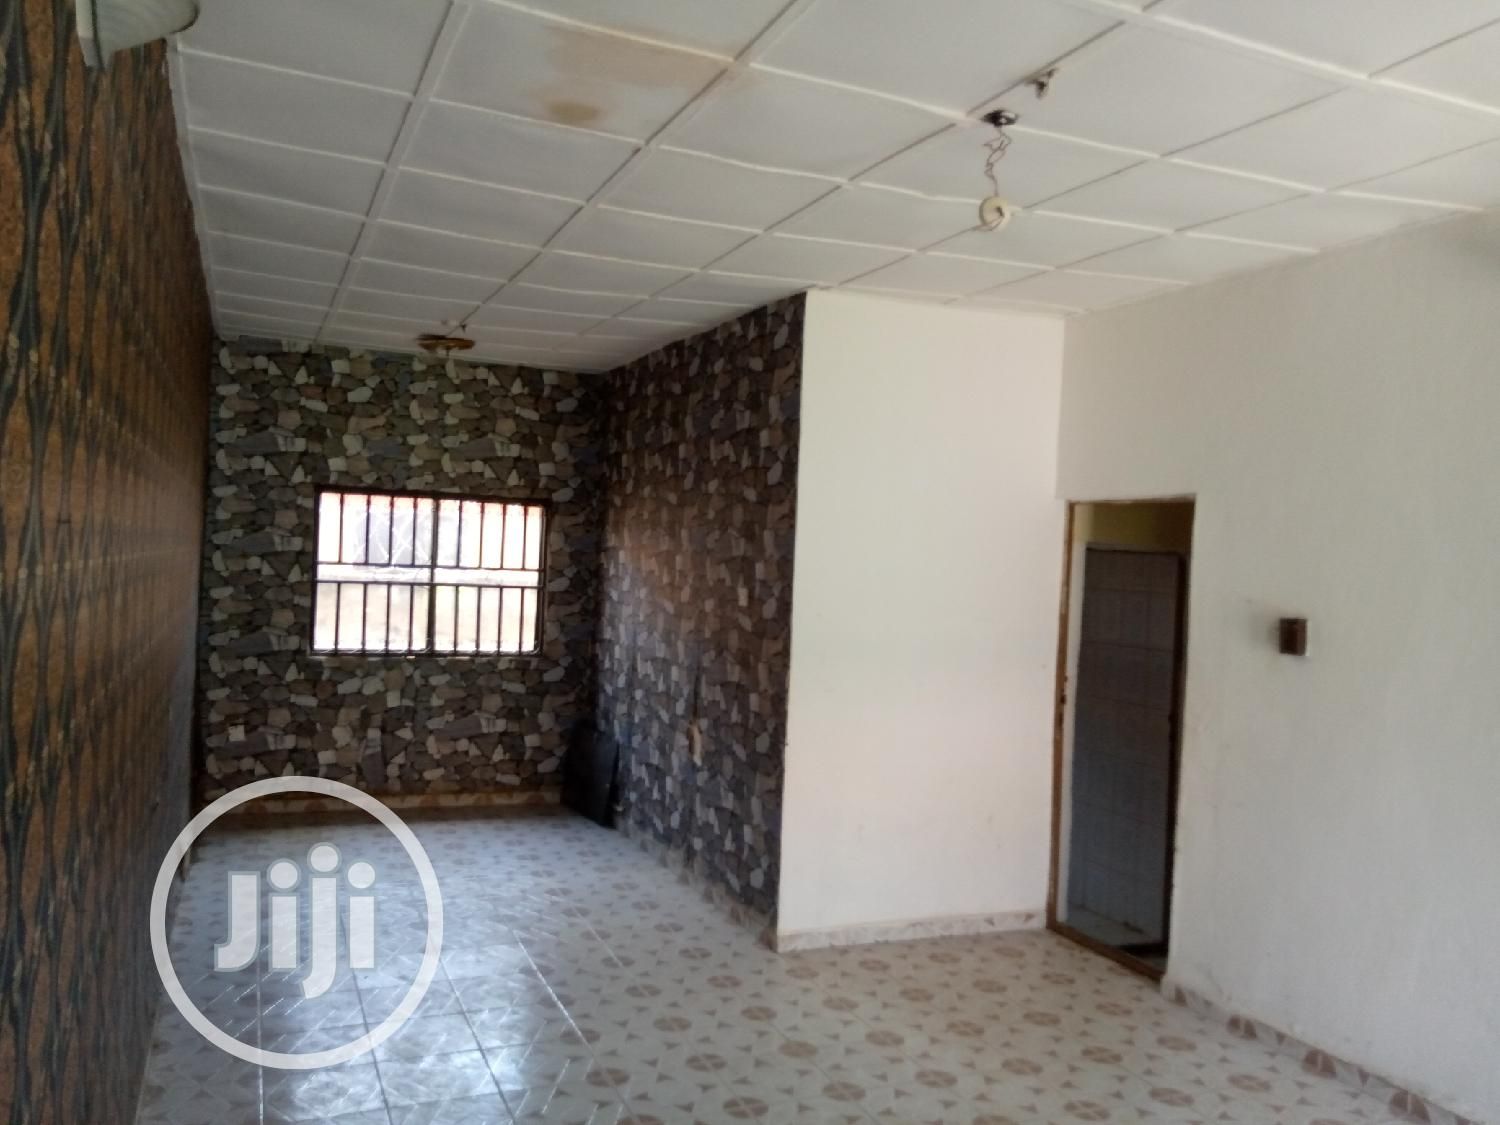 3 Bedroom Flat   Houses & Apartments For Rent for sale in Gwarinpa, Abuja (FCT) State, Nigeria